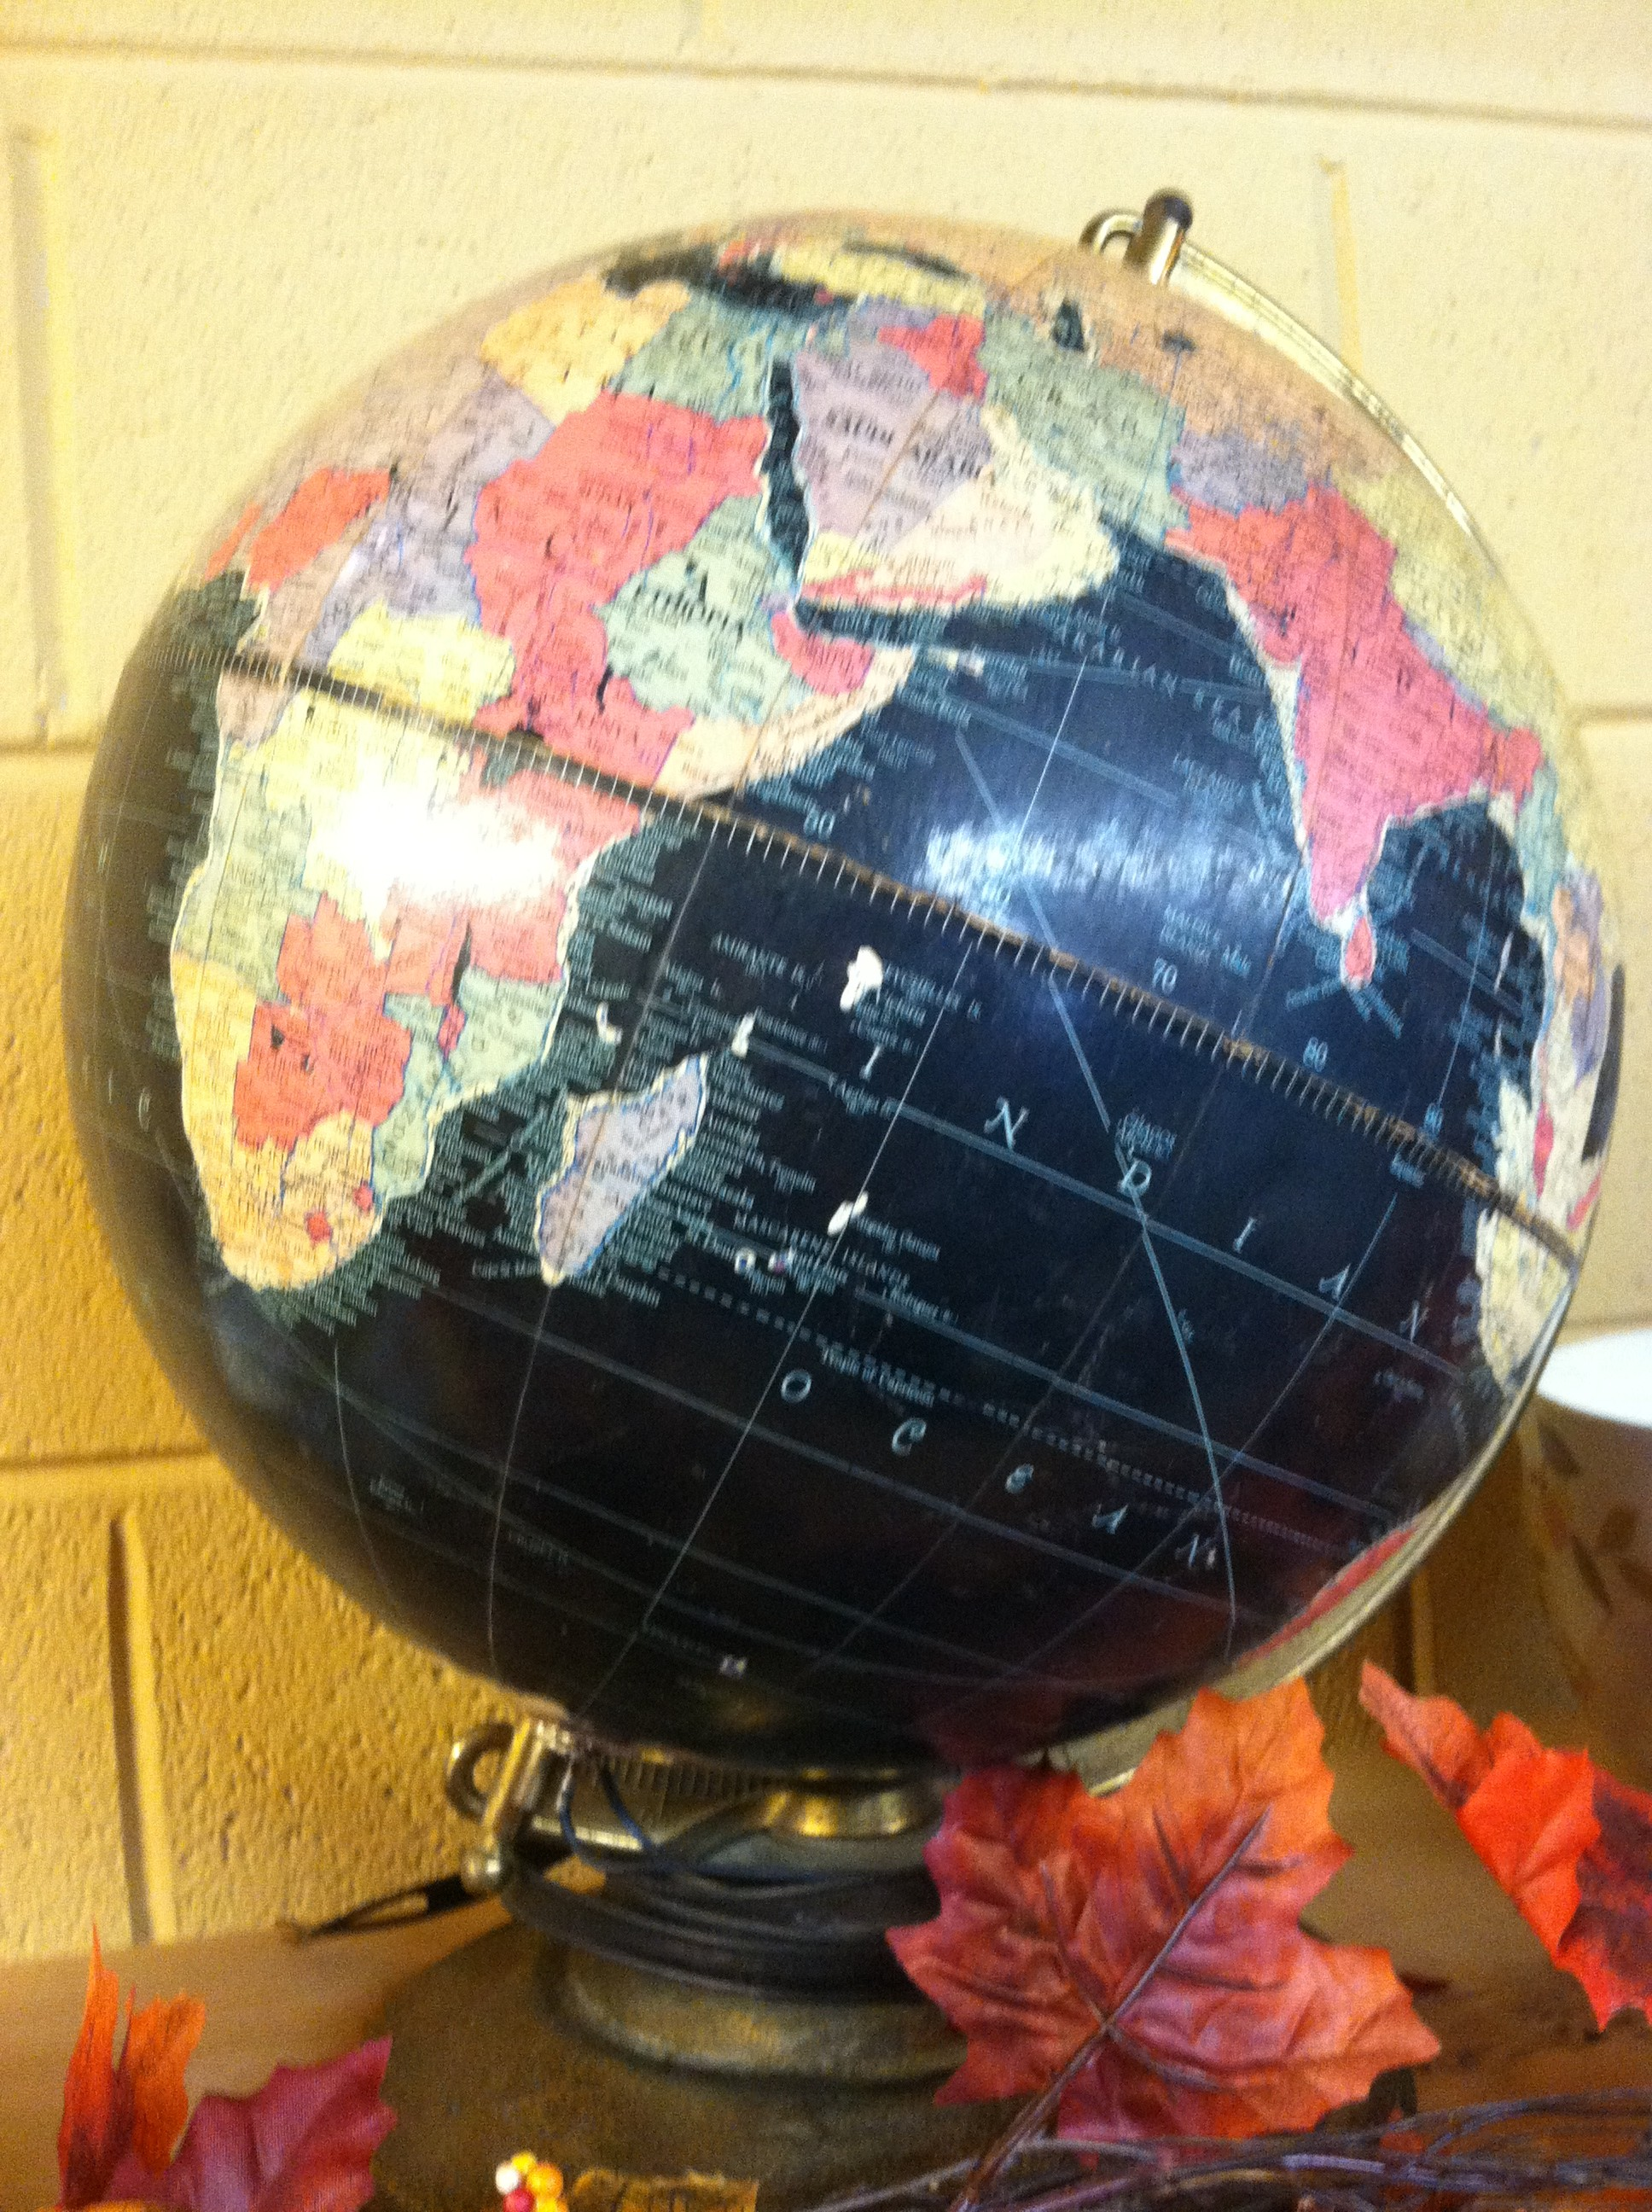 A pic of a black world globe in a Tennessee thrift store